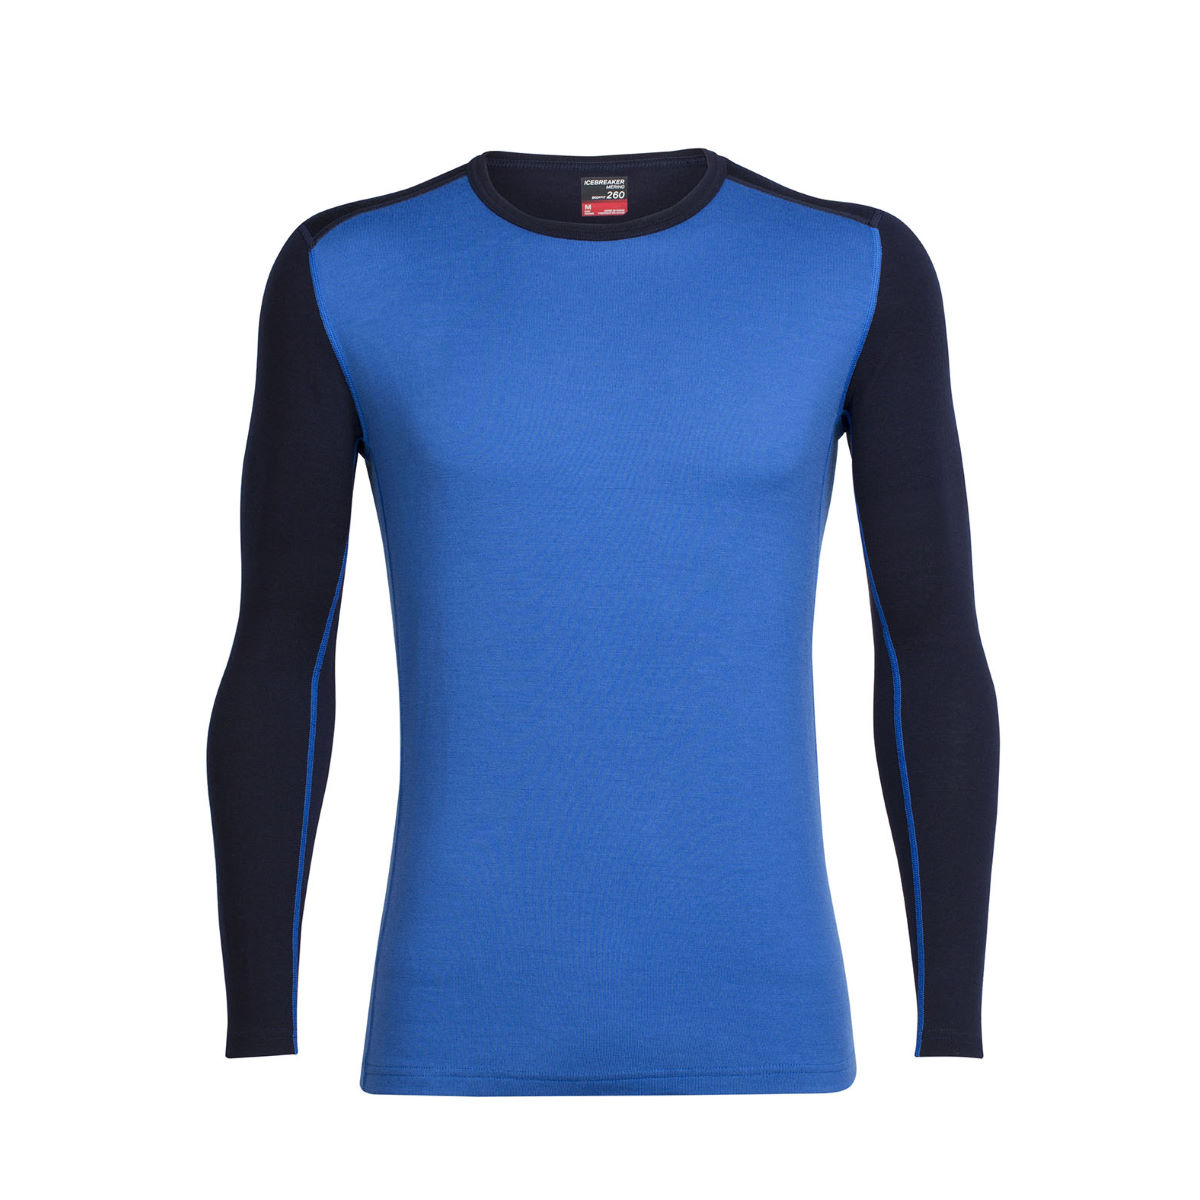 Maillot Icebreaker Tech Top (manches longues, col rond) - S